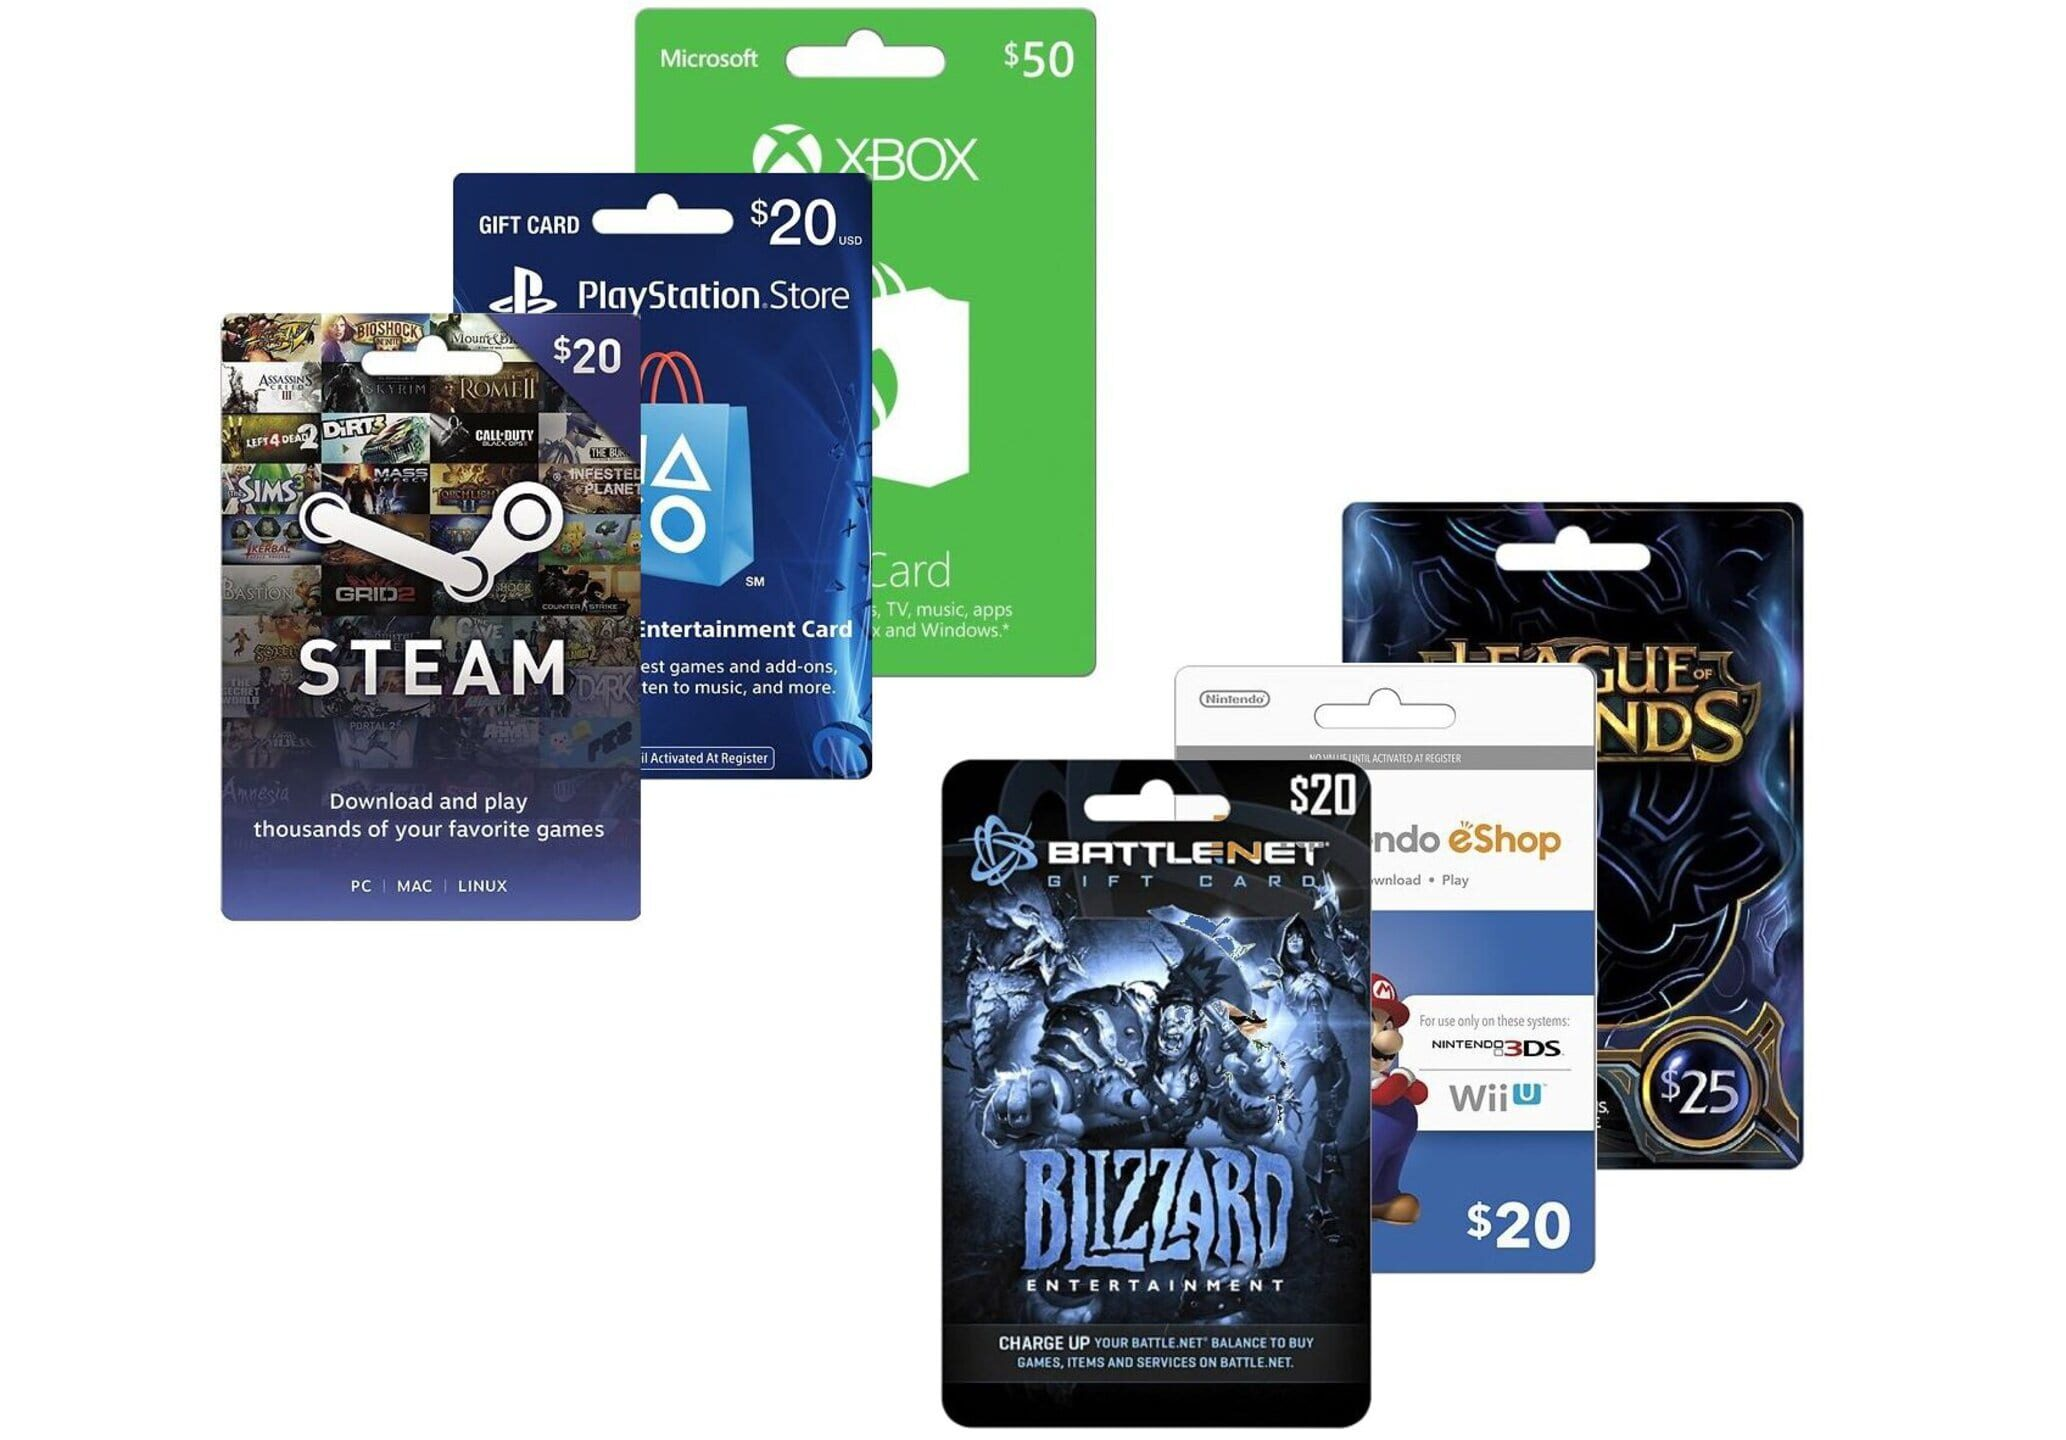 Buy a game card at Best Buy, get a second one 20% off